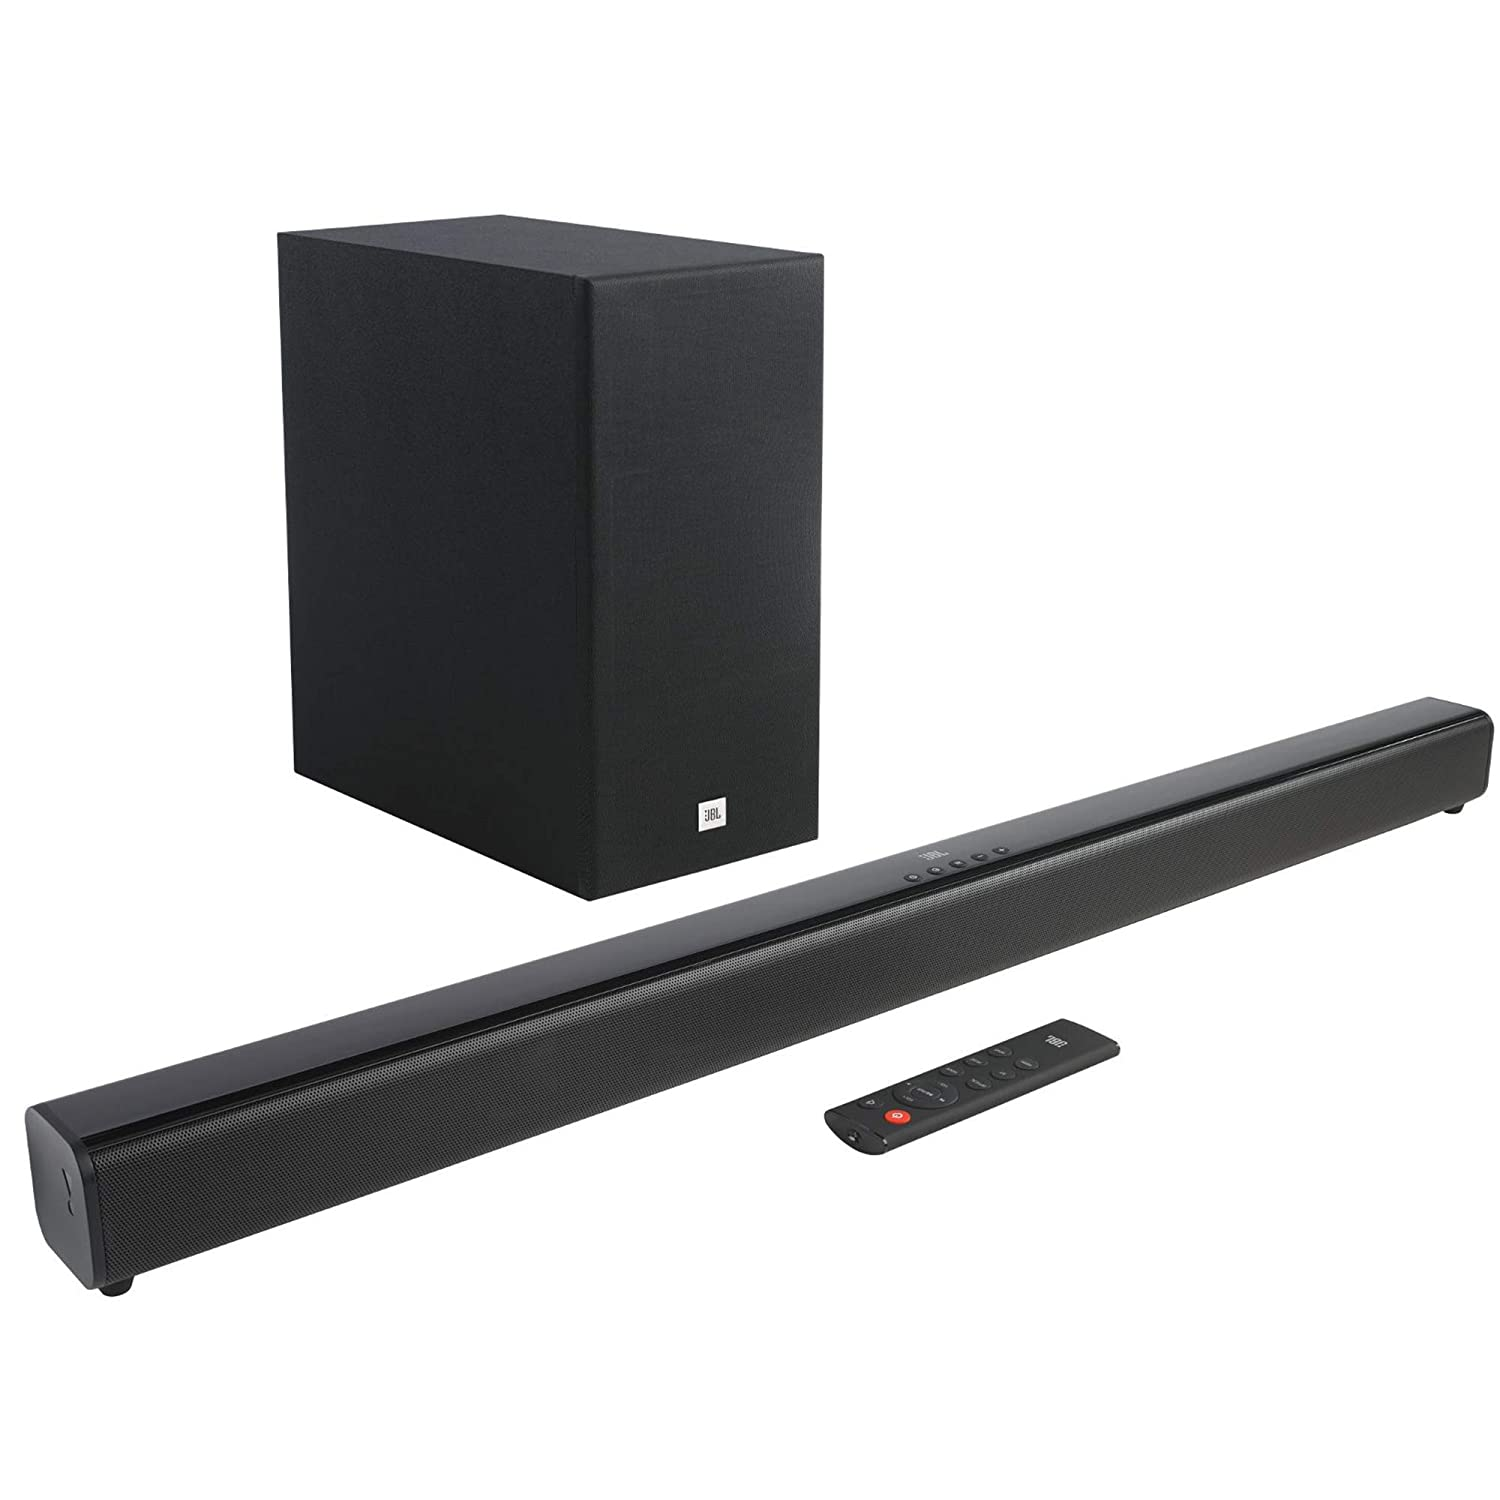 JBL Cinema SB160 2.1 Channel Soundbar with Wireless